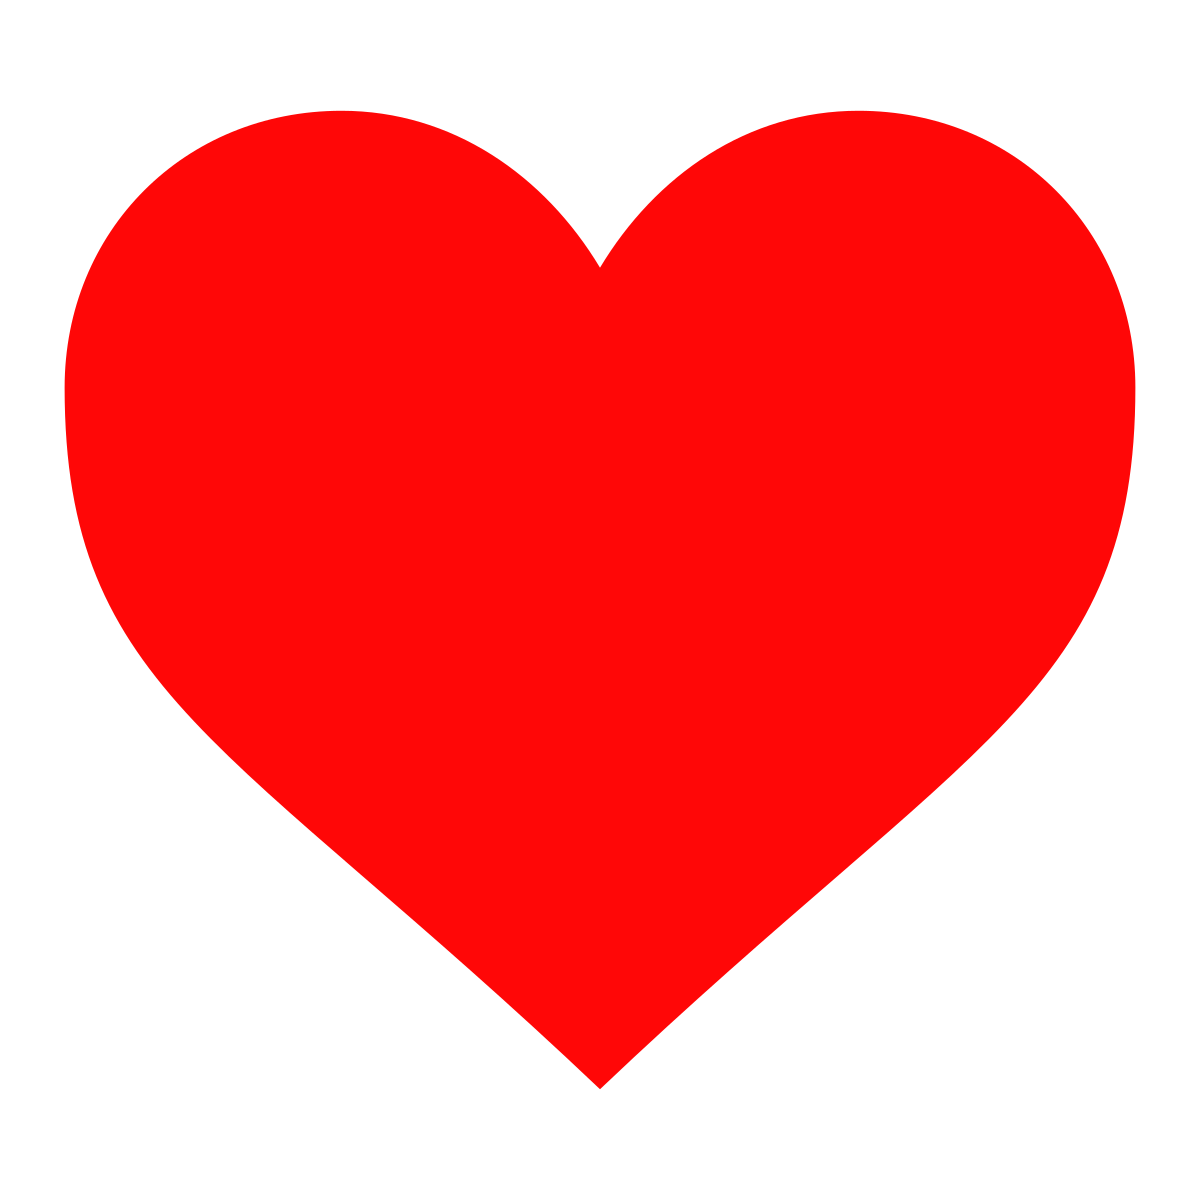 A love heart clipart png Heart (symbol) - Wikipedia png